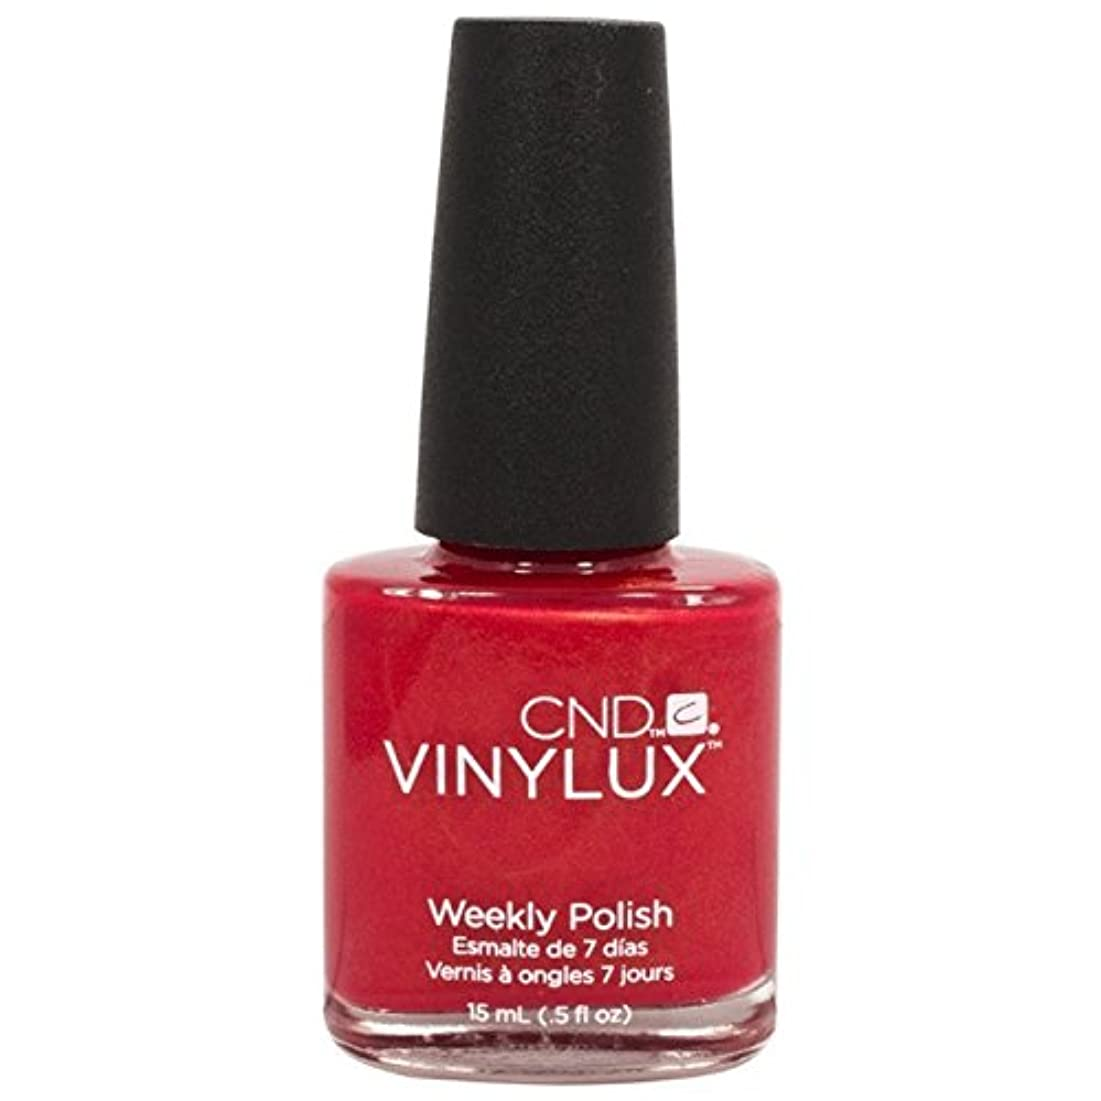 CND Vinylux Manicure Lacquer _Hollywood  #119 _15ml (0.5oz)